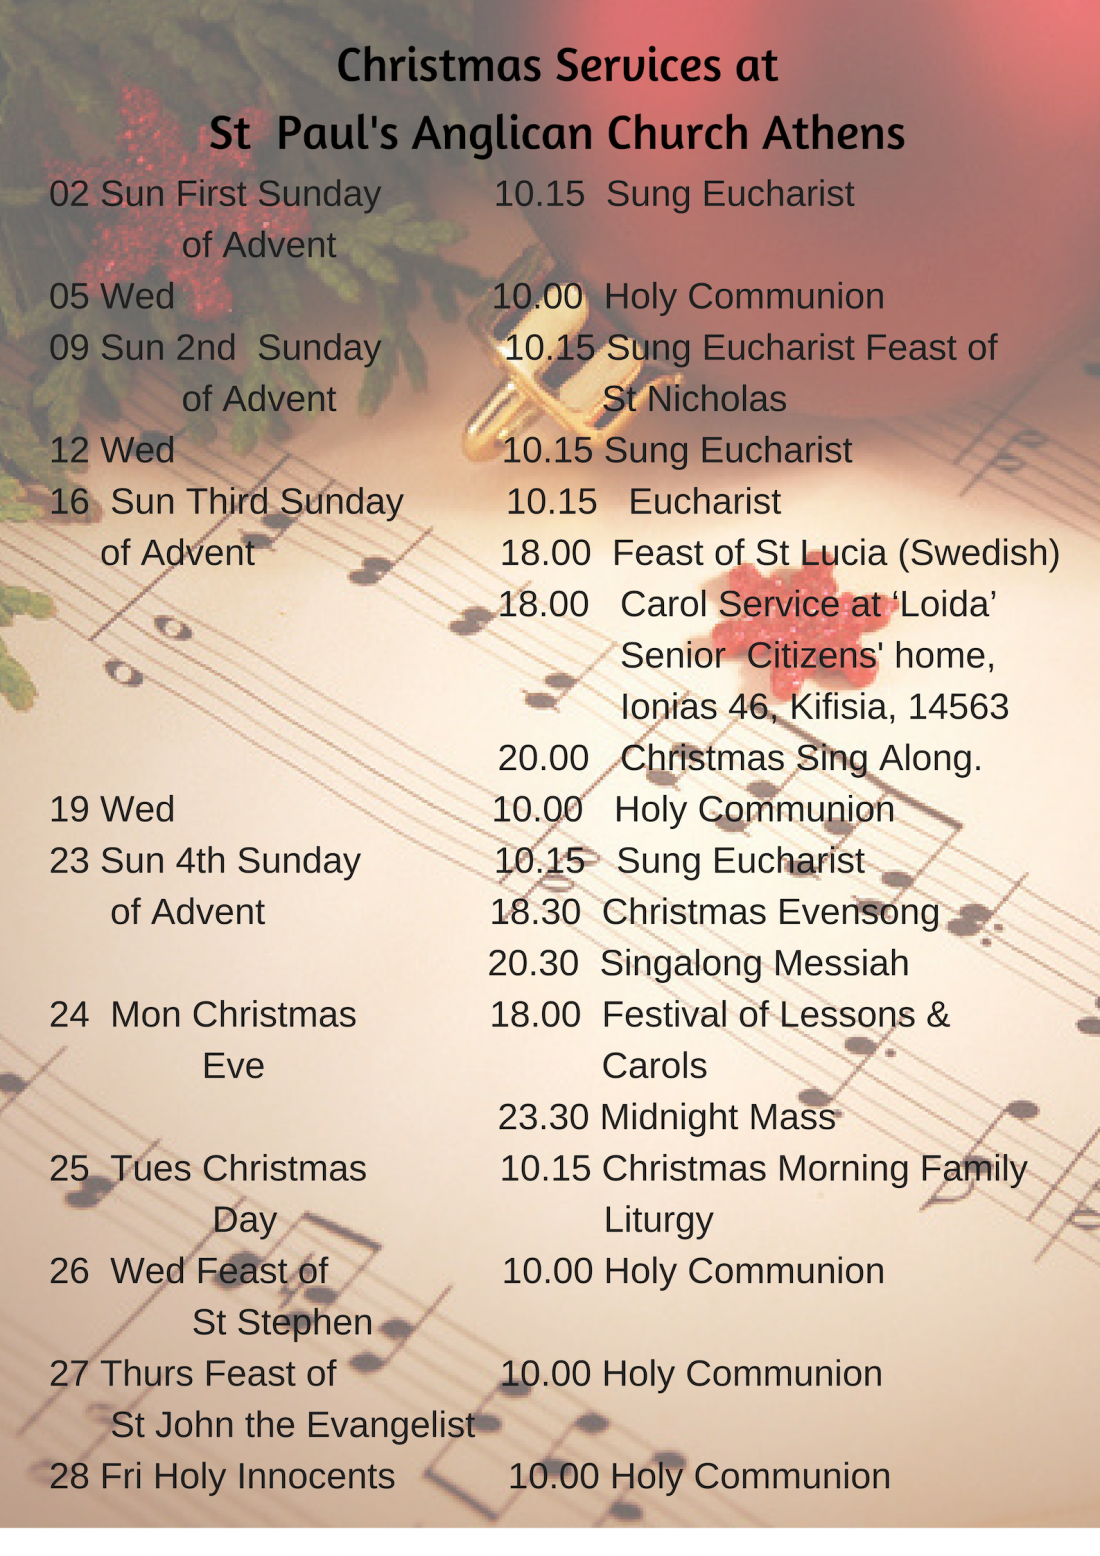 Christmas Services at St Paul's Anglican Church Athens